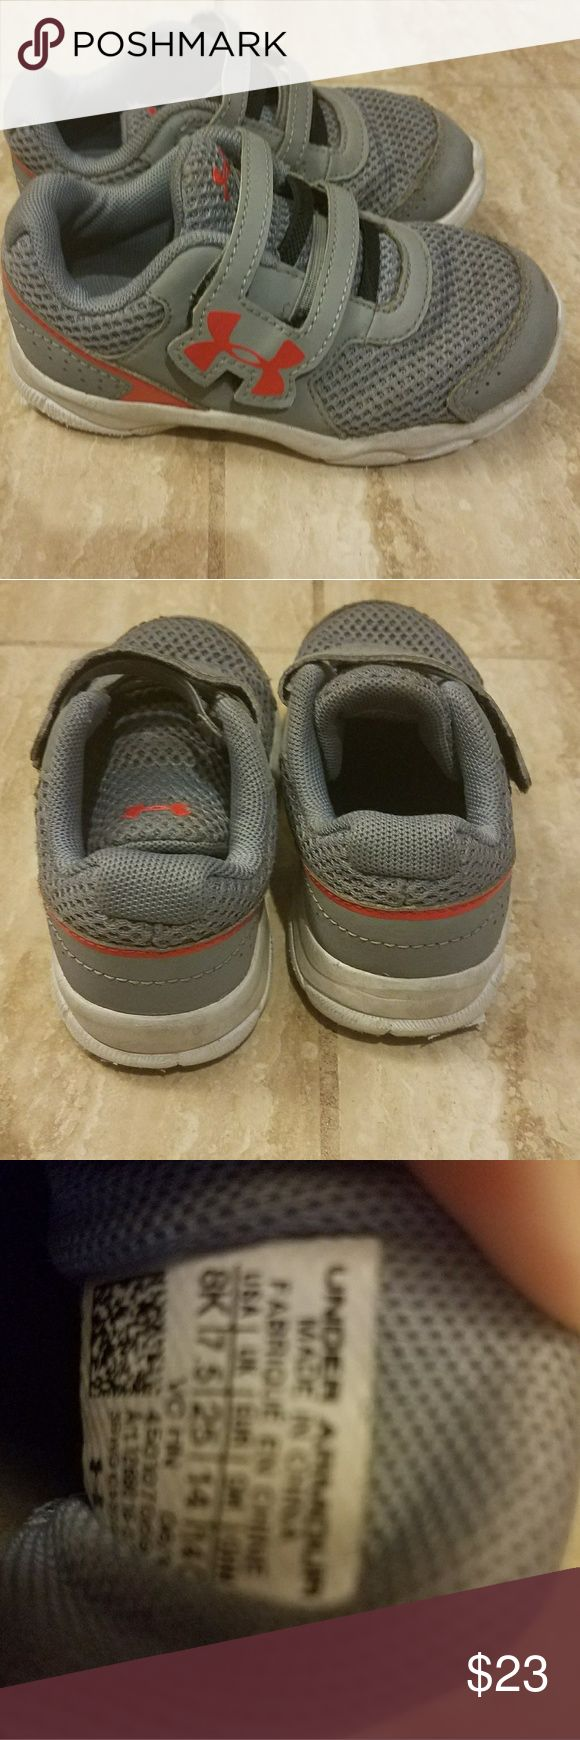 Under Armour Toddler Tennis Shoes Boys toddler shoes size 8. Under Armour.  Used condition.  Gray with red accent.  Velcro closure.  Sneakers. Tennis shoes. Could be unisex, for boys or girls. Under Armour Shoes Sneakers